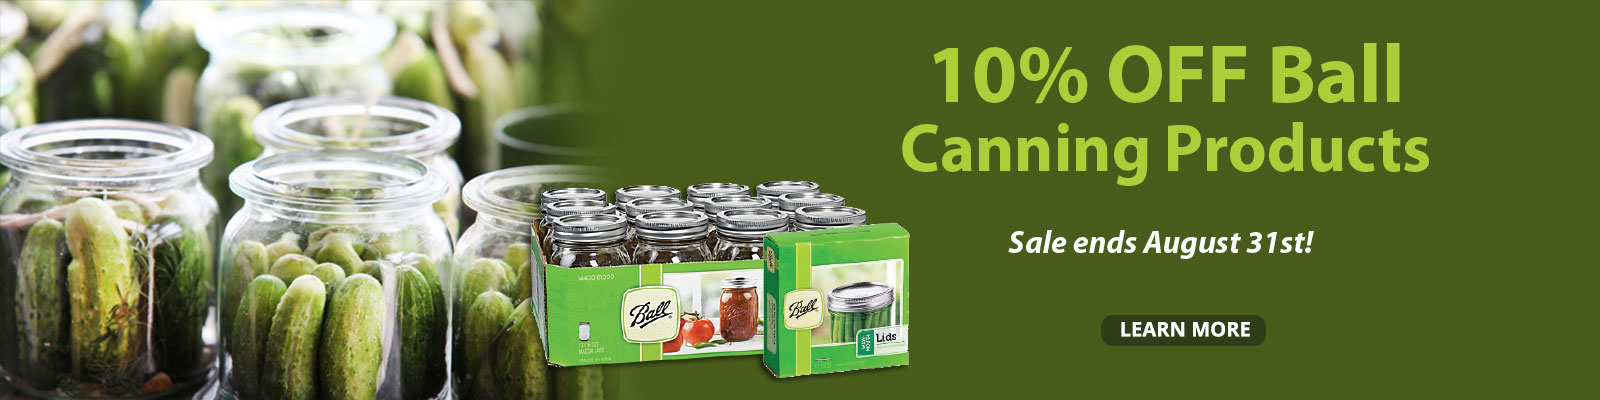 Canning Sale